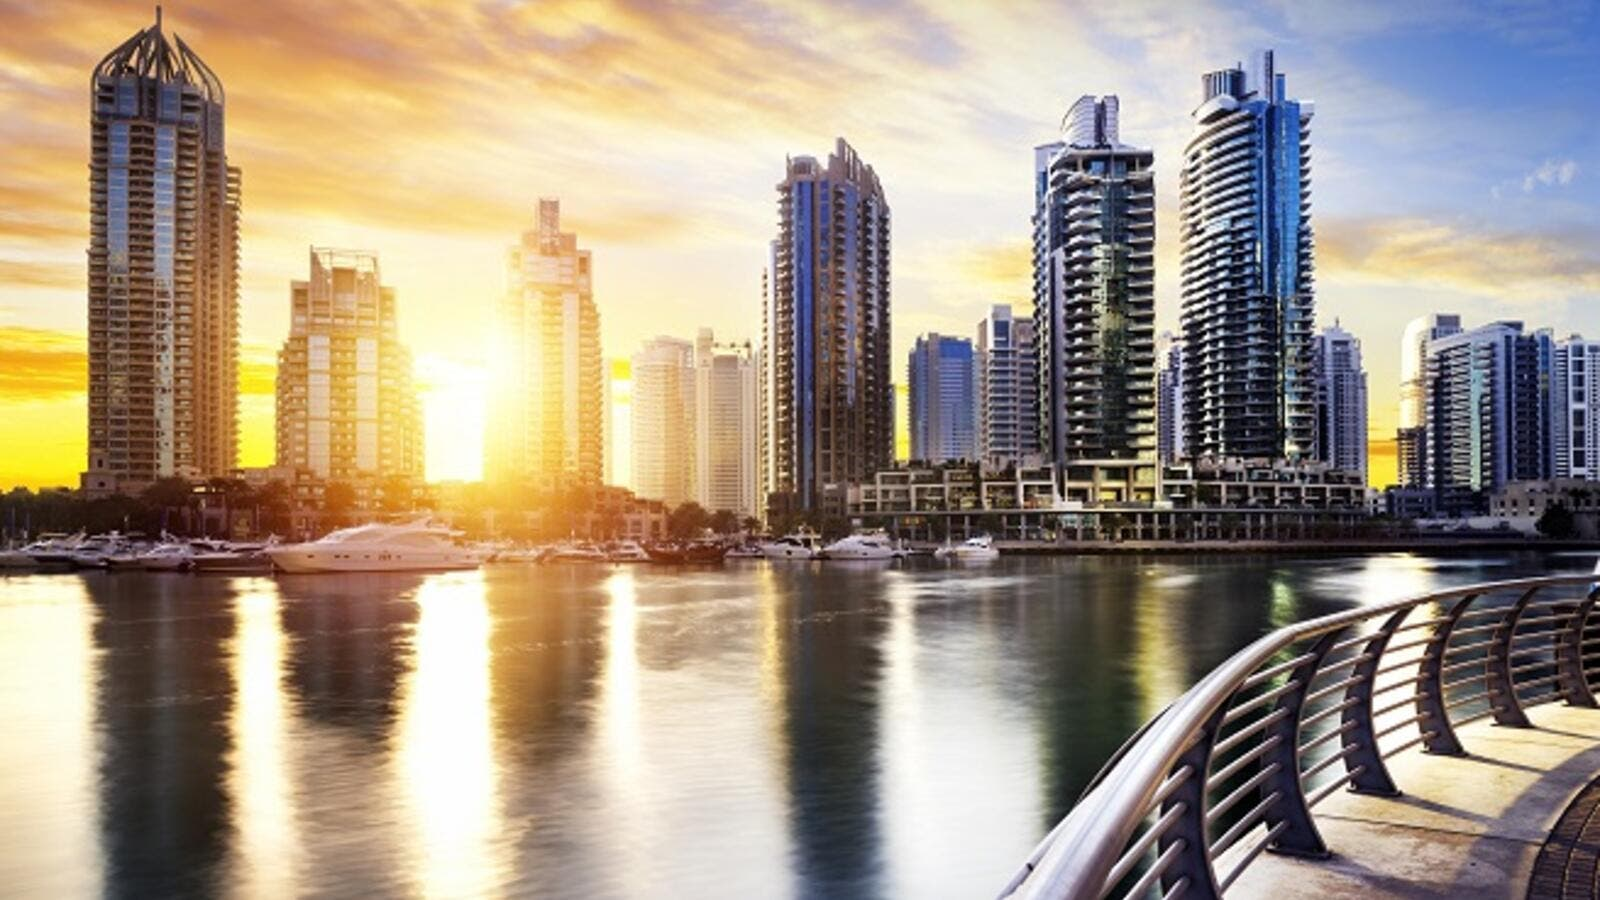 Among the key initiatives is also a Dubai National Design Center. (Shutterstock)